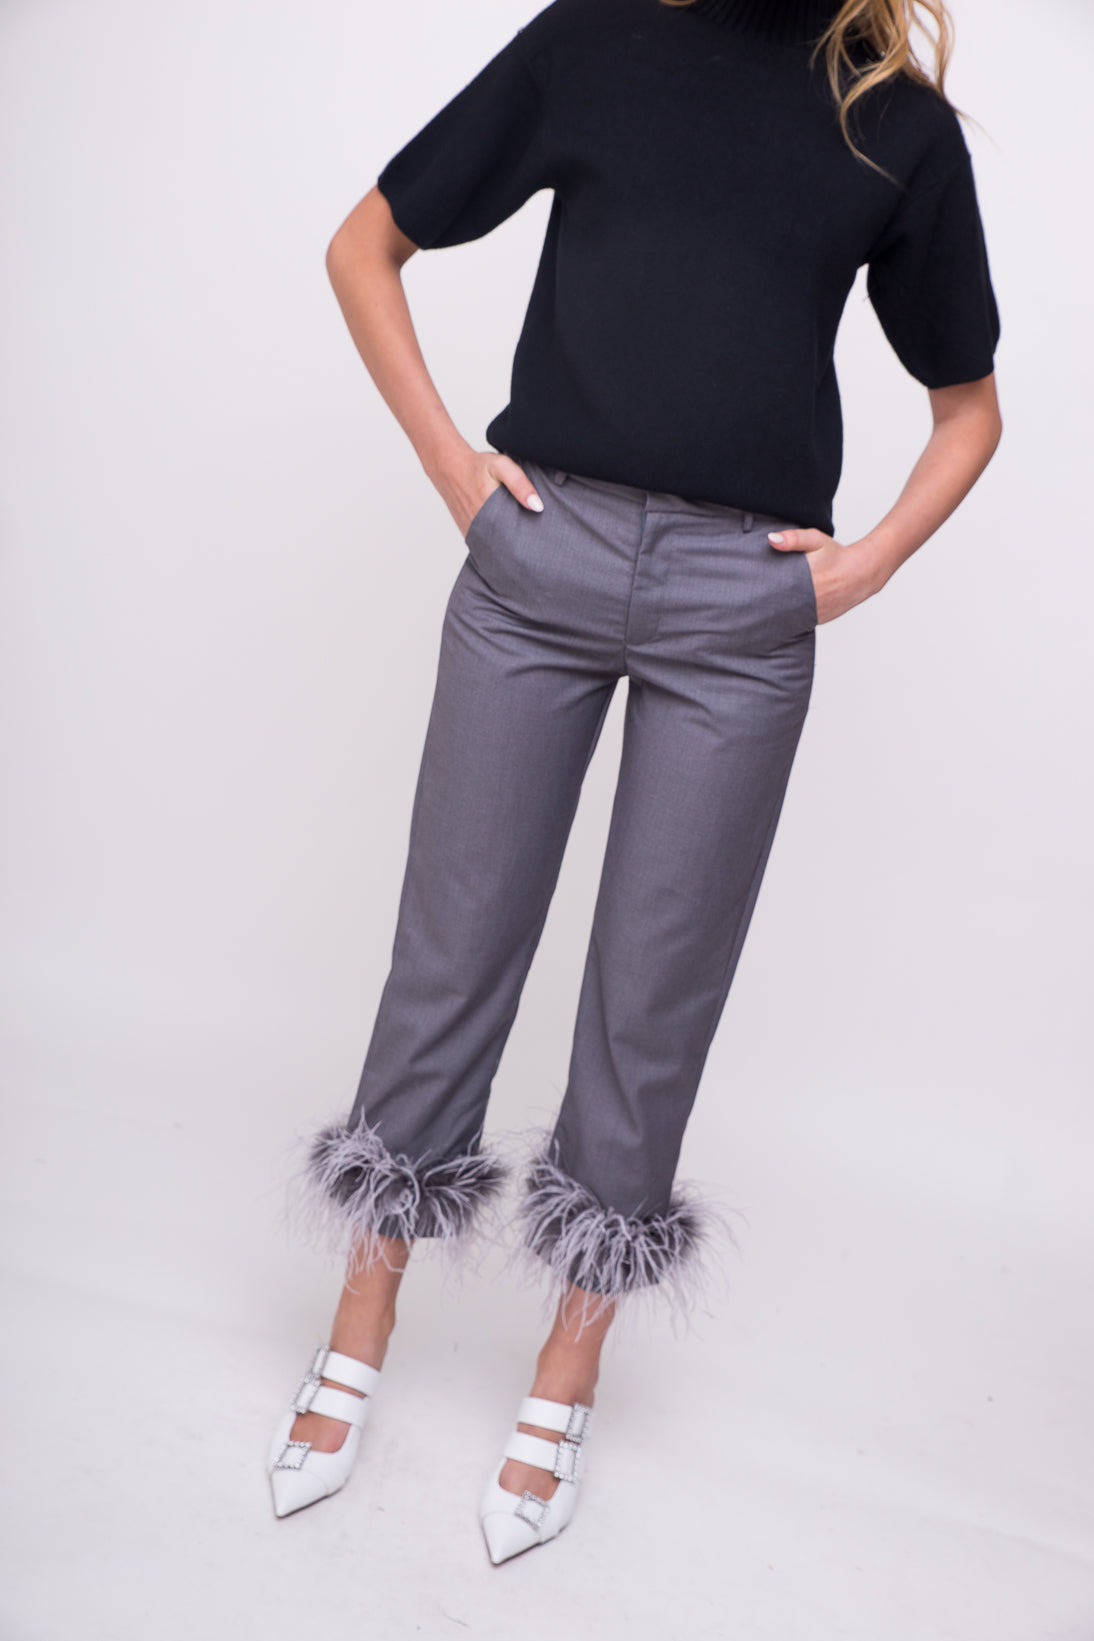 Elegant grey dress pants with feathered details.